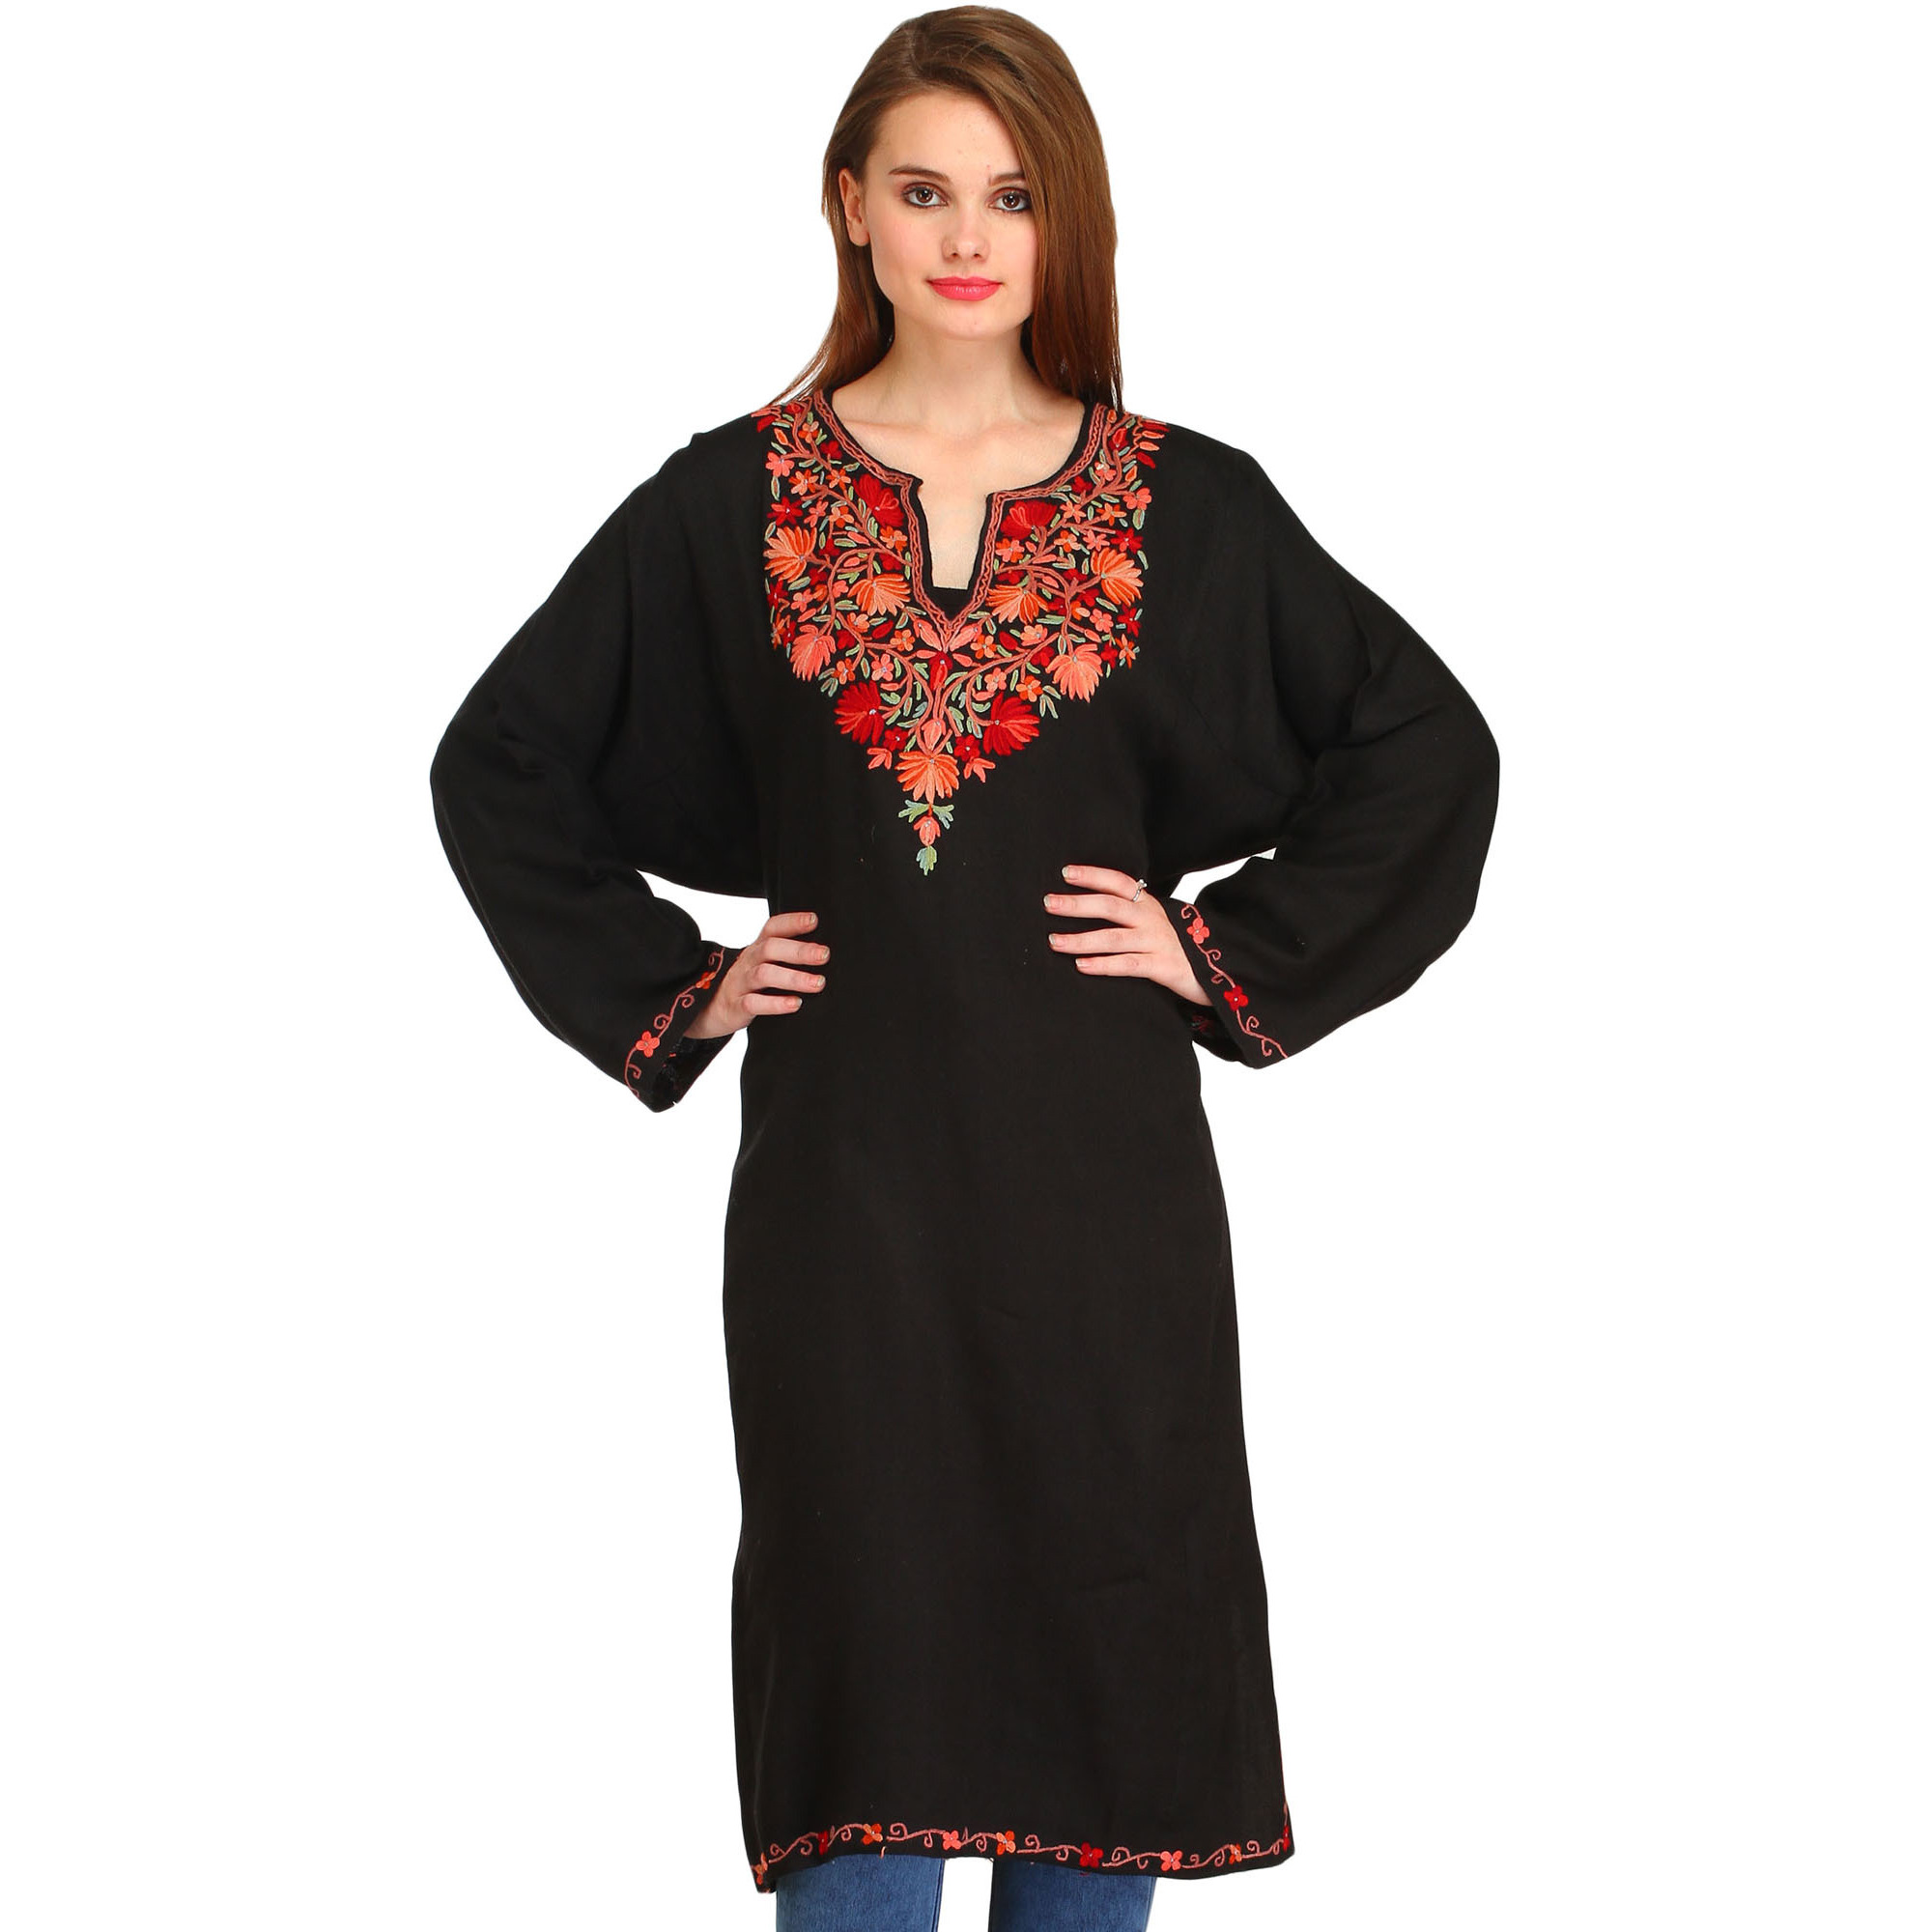 Caviar-Black Phiran from Kashmir with Ari Hand-Embroidery on Neck